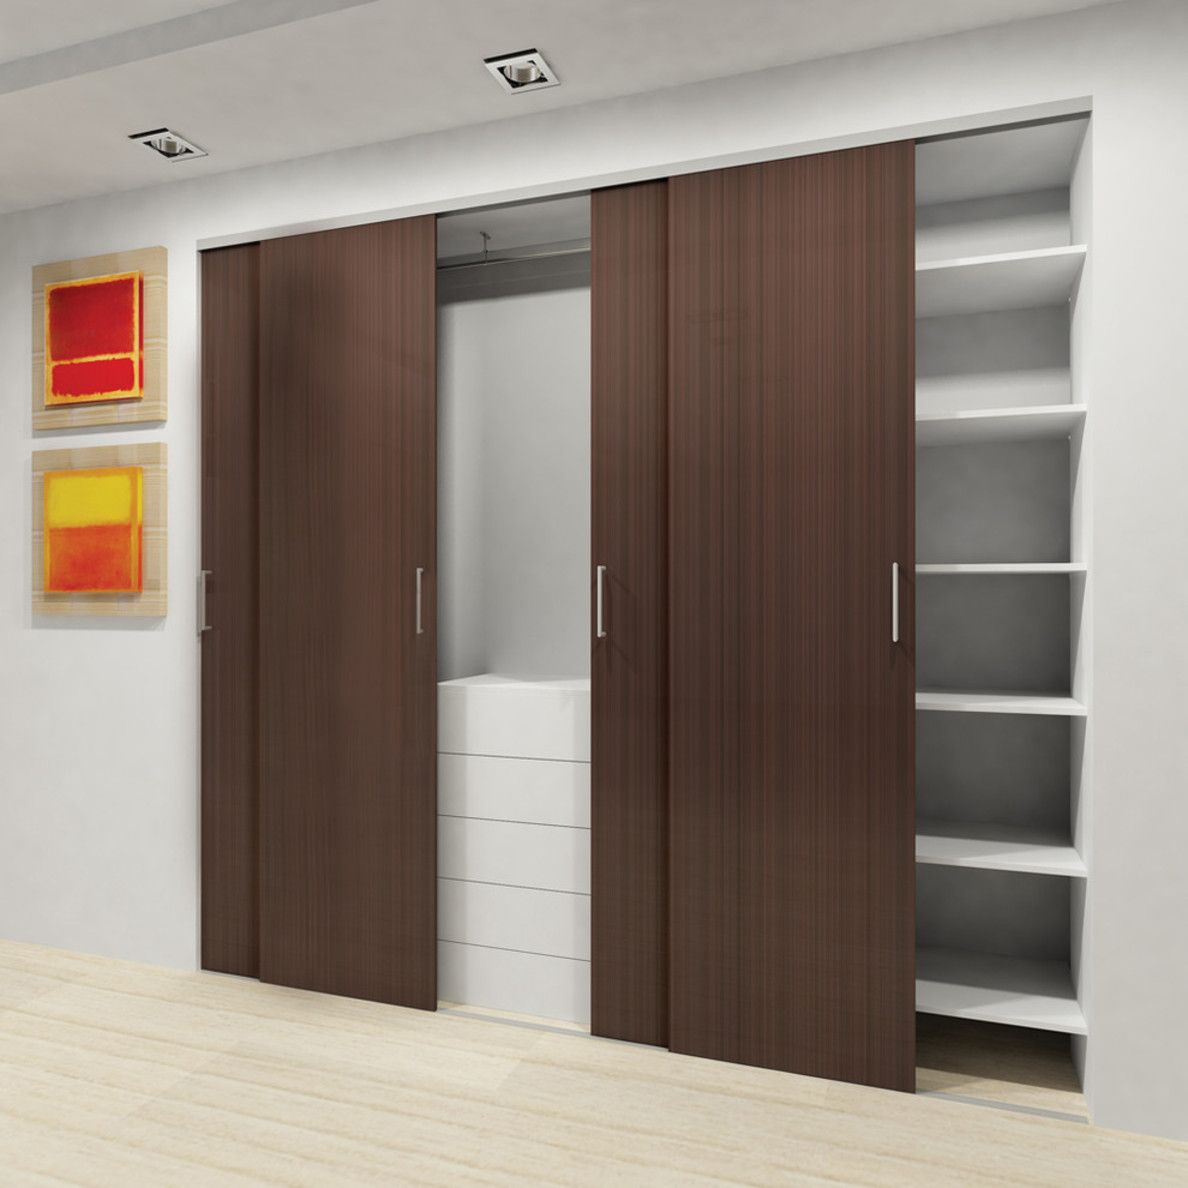 Beautiful Create A New Look For Your Room With These Closet Door Ideas